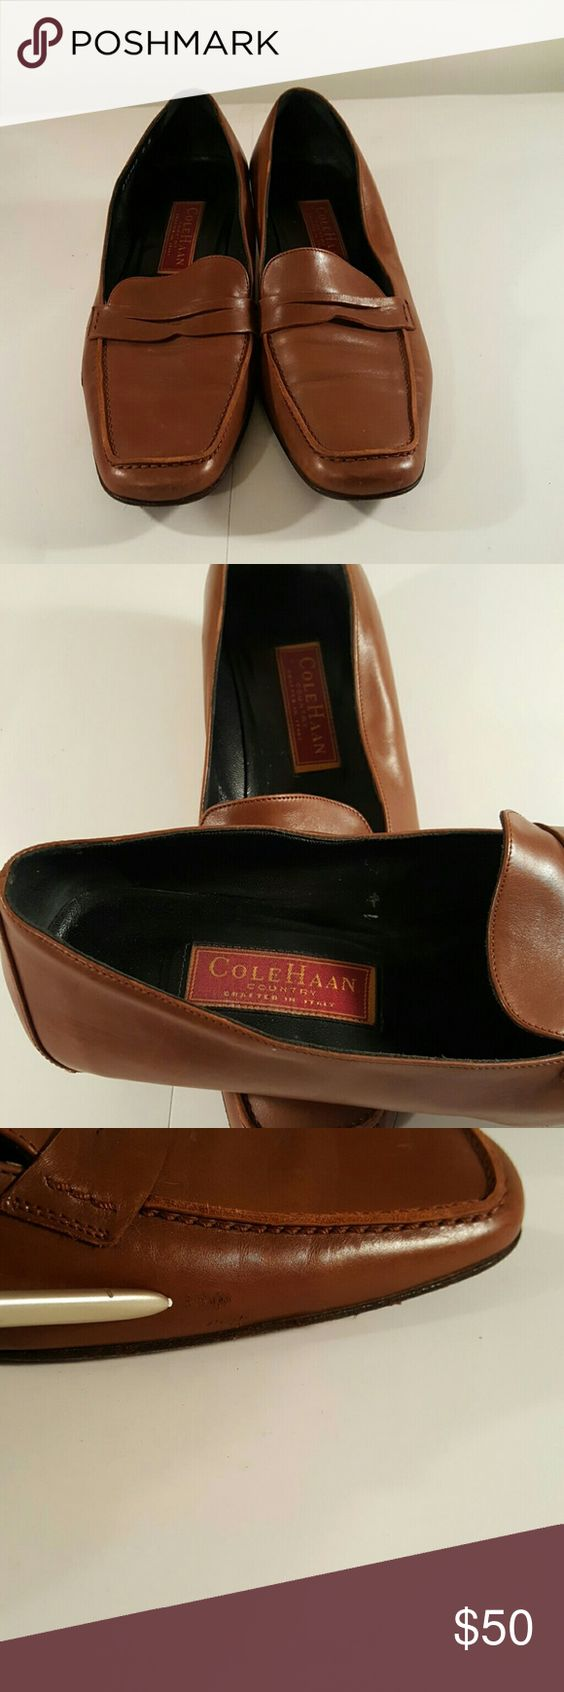 Shoes golden brown Leather Loafer Cole Haan Shoes Flats & Loafers